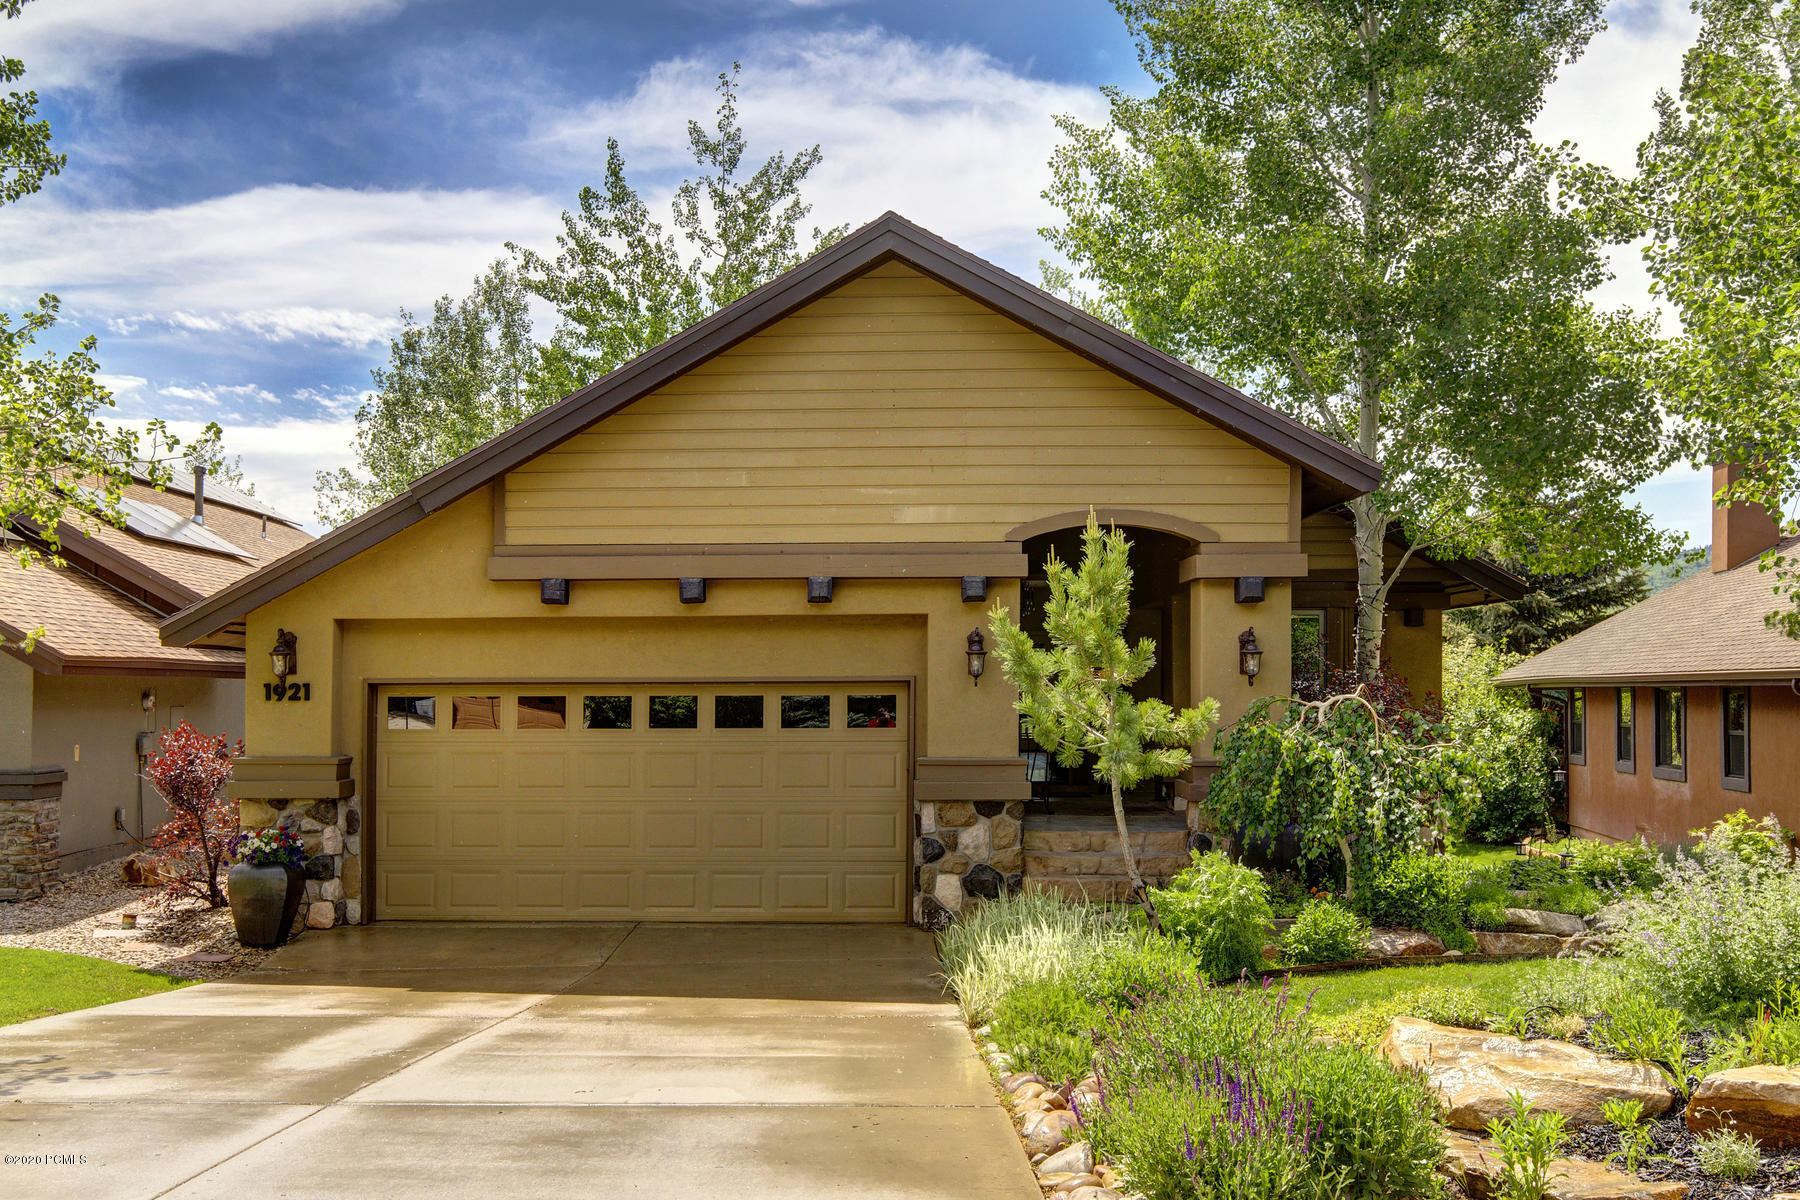 1921 Roffe Road, Park City, Utah 84098, 4 Bedrooms Bedrooms, ,4 BathroomsBathrooms,Single Family,For Sale,Roffe,12000111